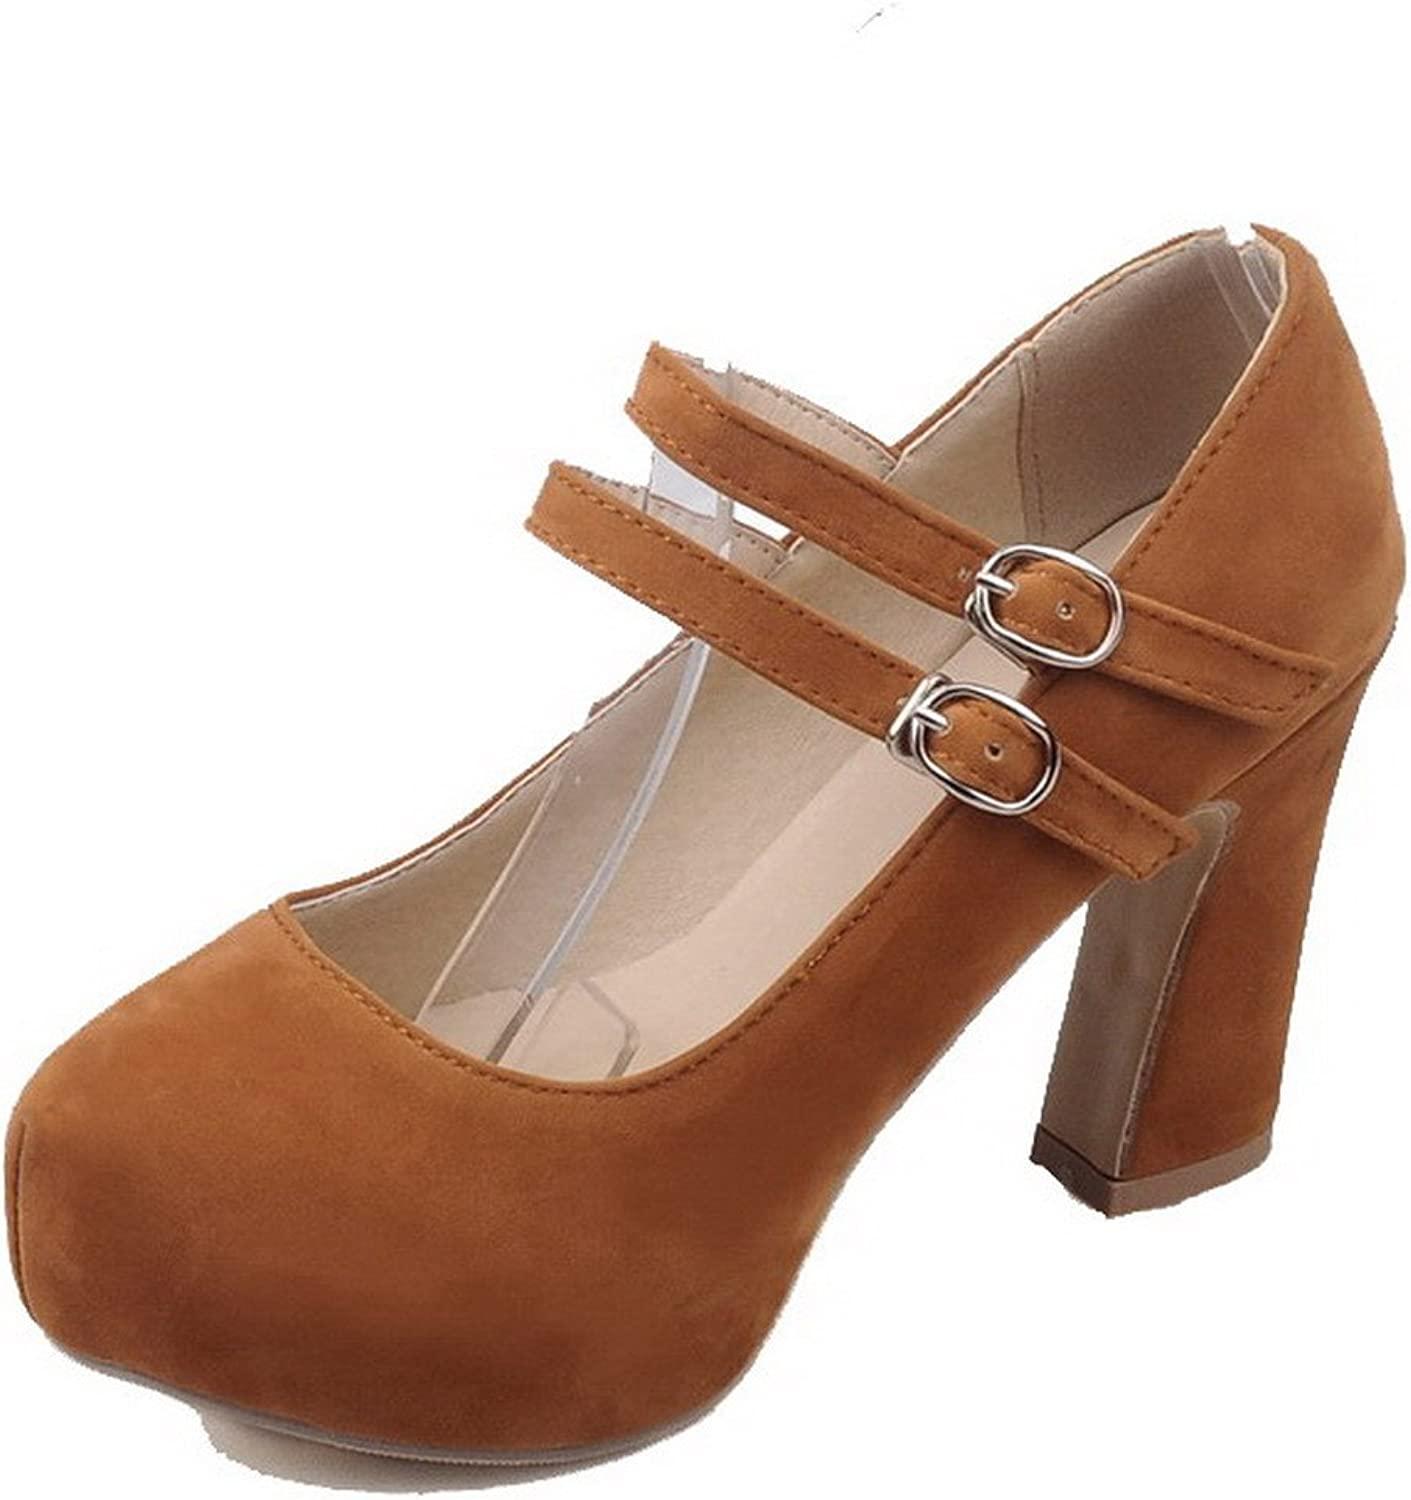 WeenFashion Women's Frosted Round Closed Toe Solid Pull-On Pumps-shoes,AMGDX006520